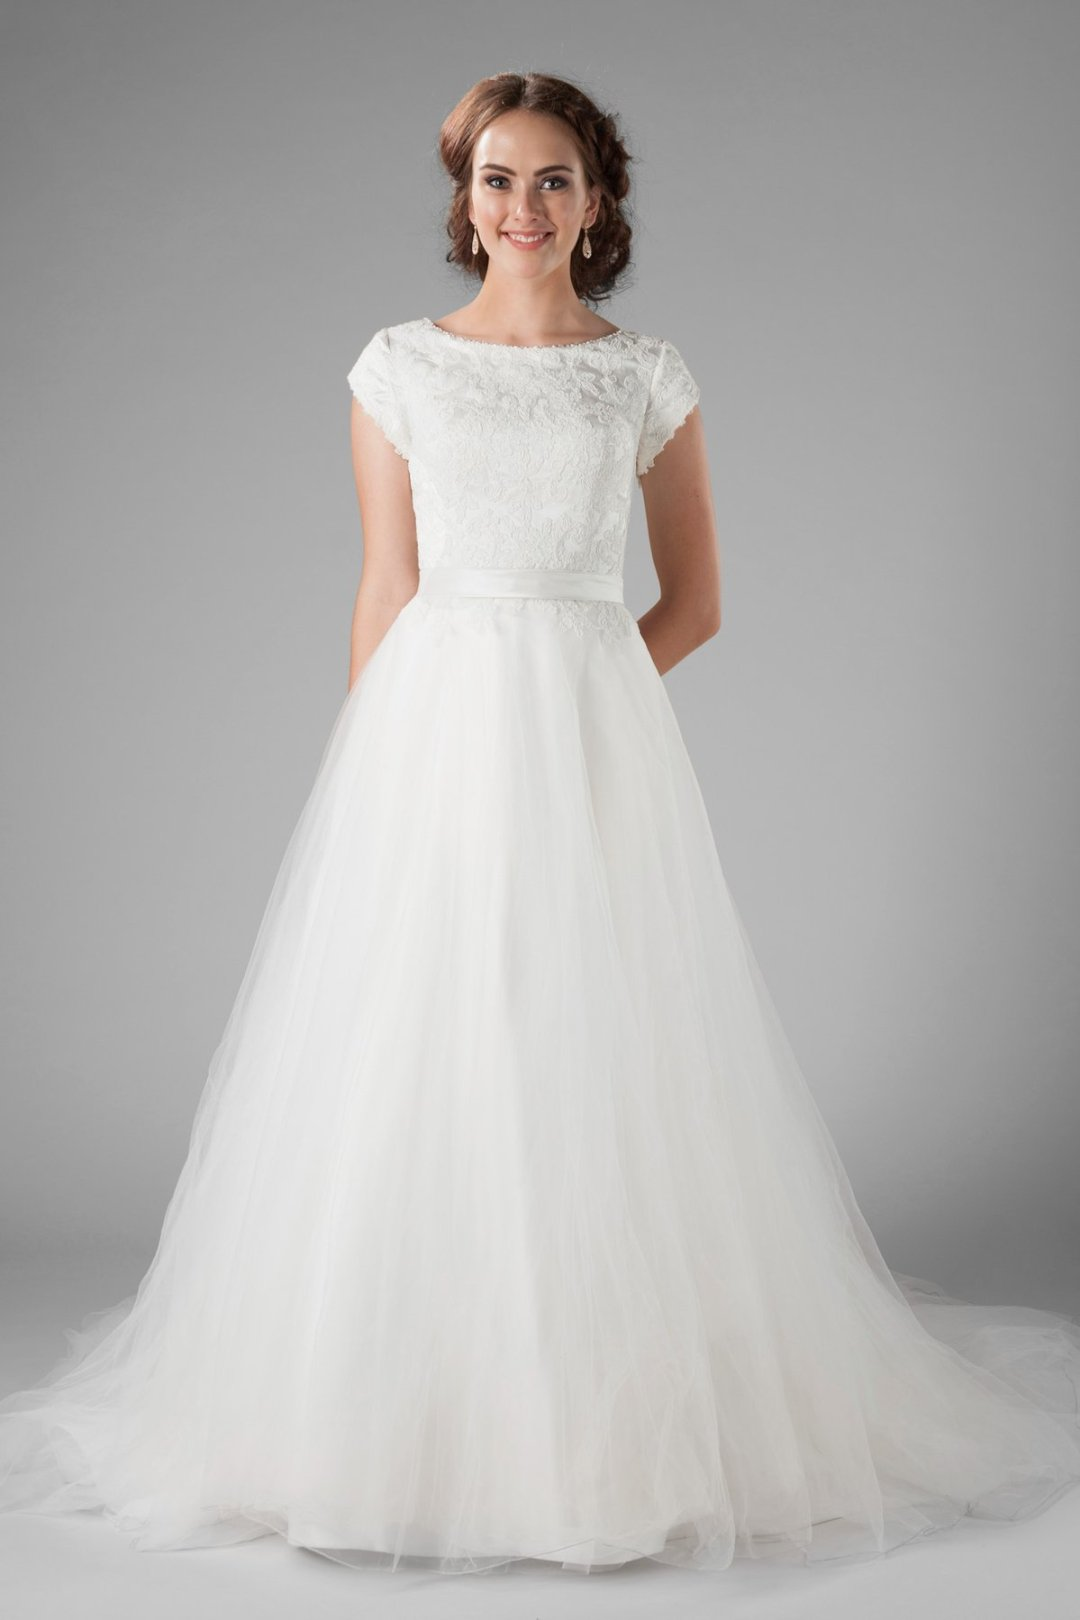 25 Modest Ball Gown Wedding Dresses - 4